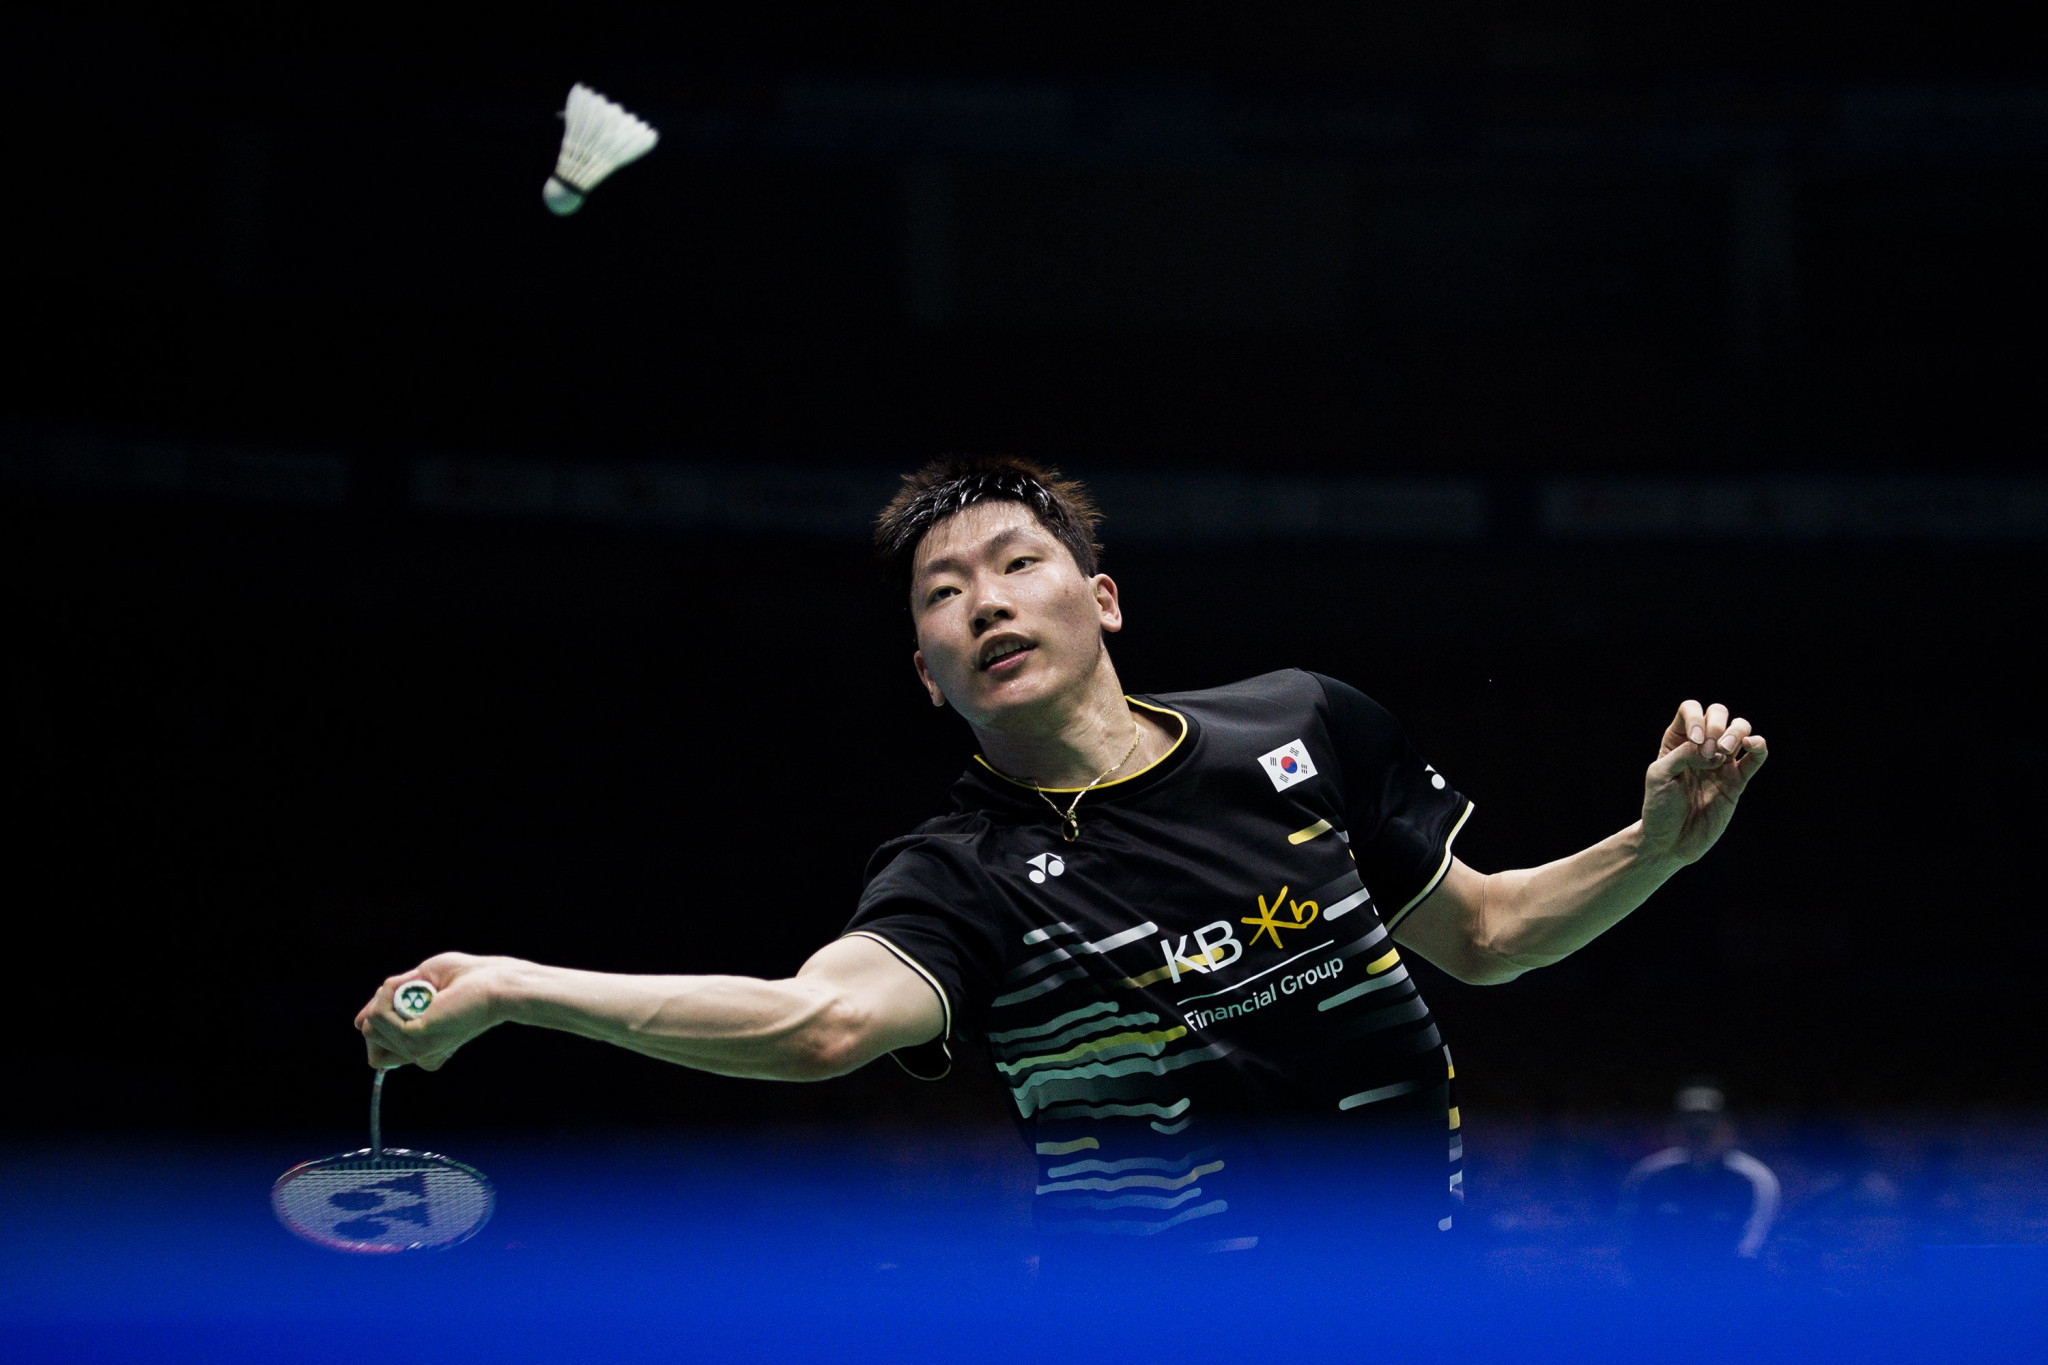 Top men's seed safely through but others dumped out at BWF US Open